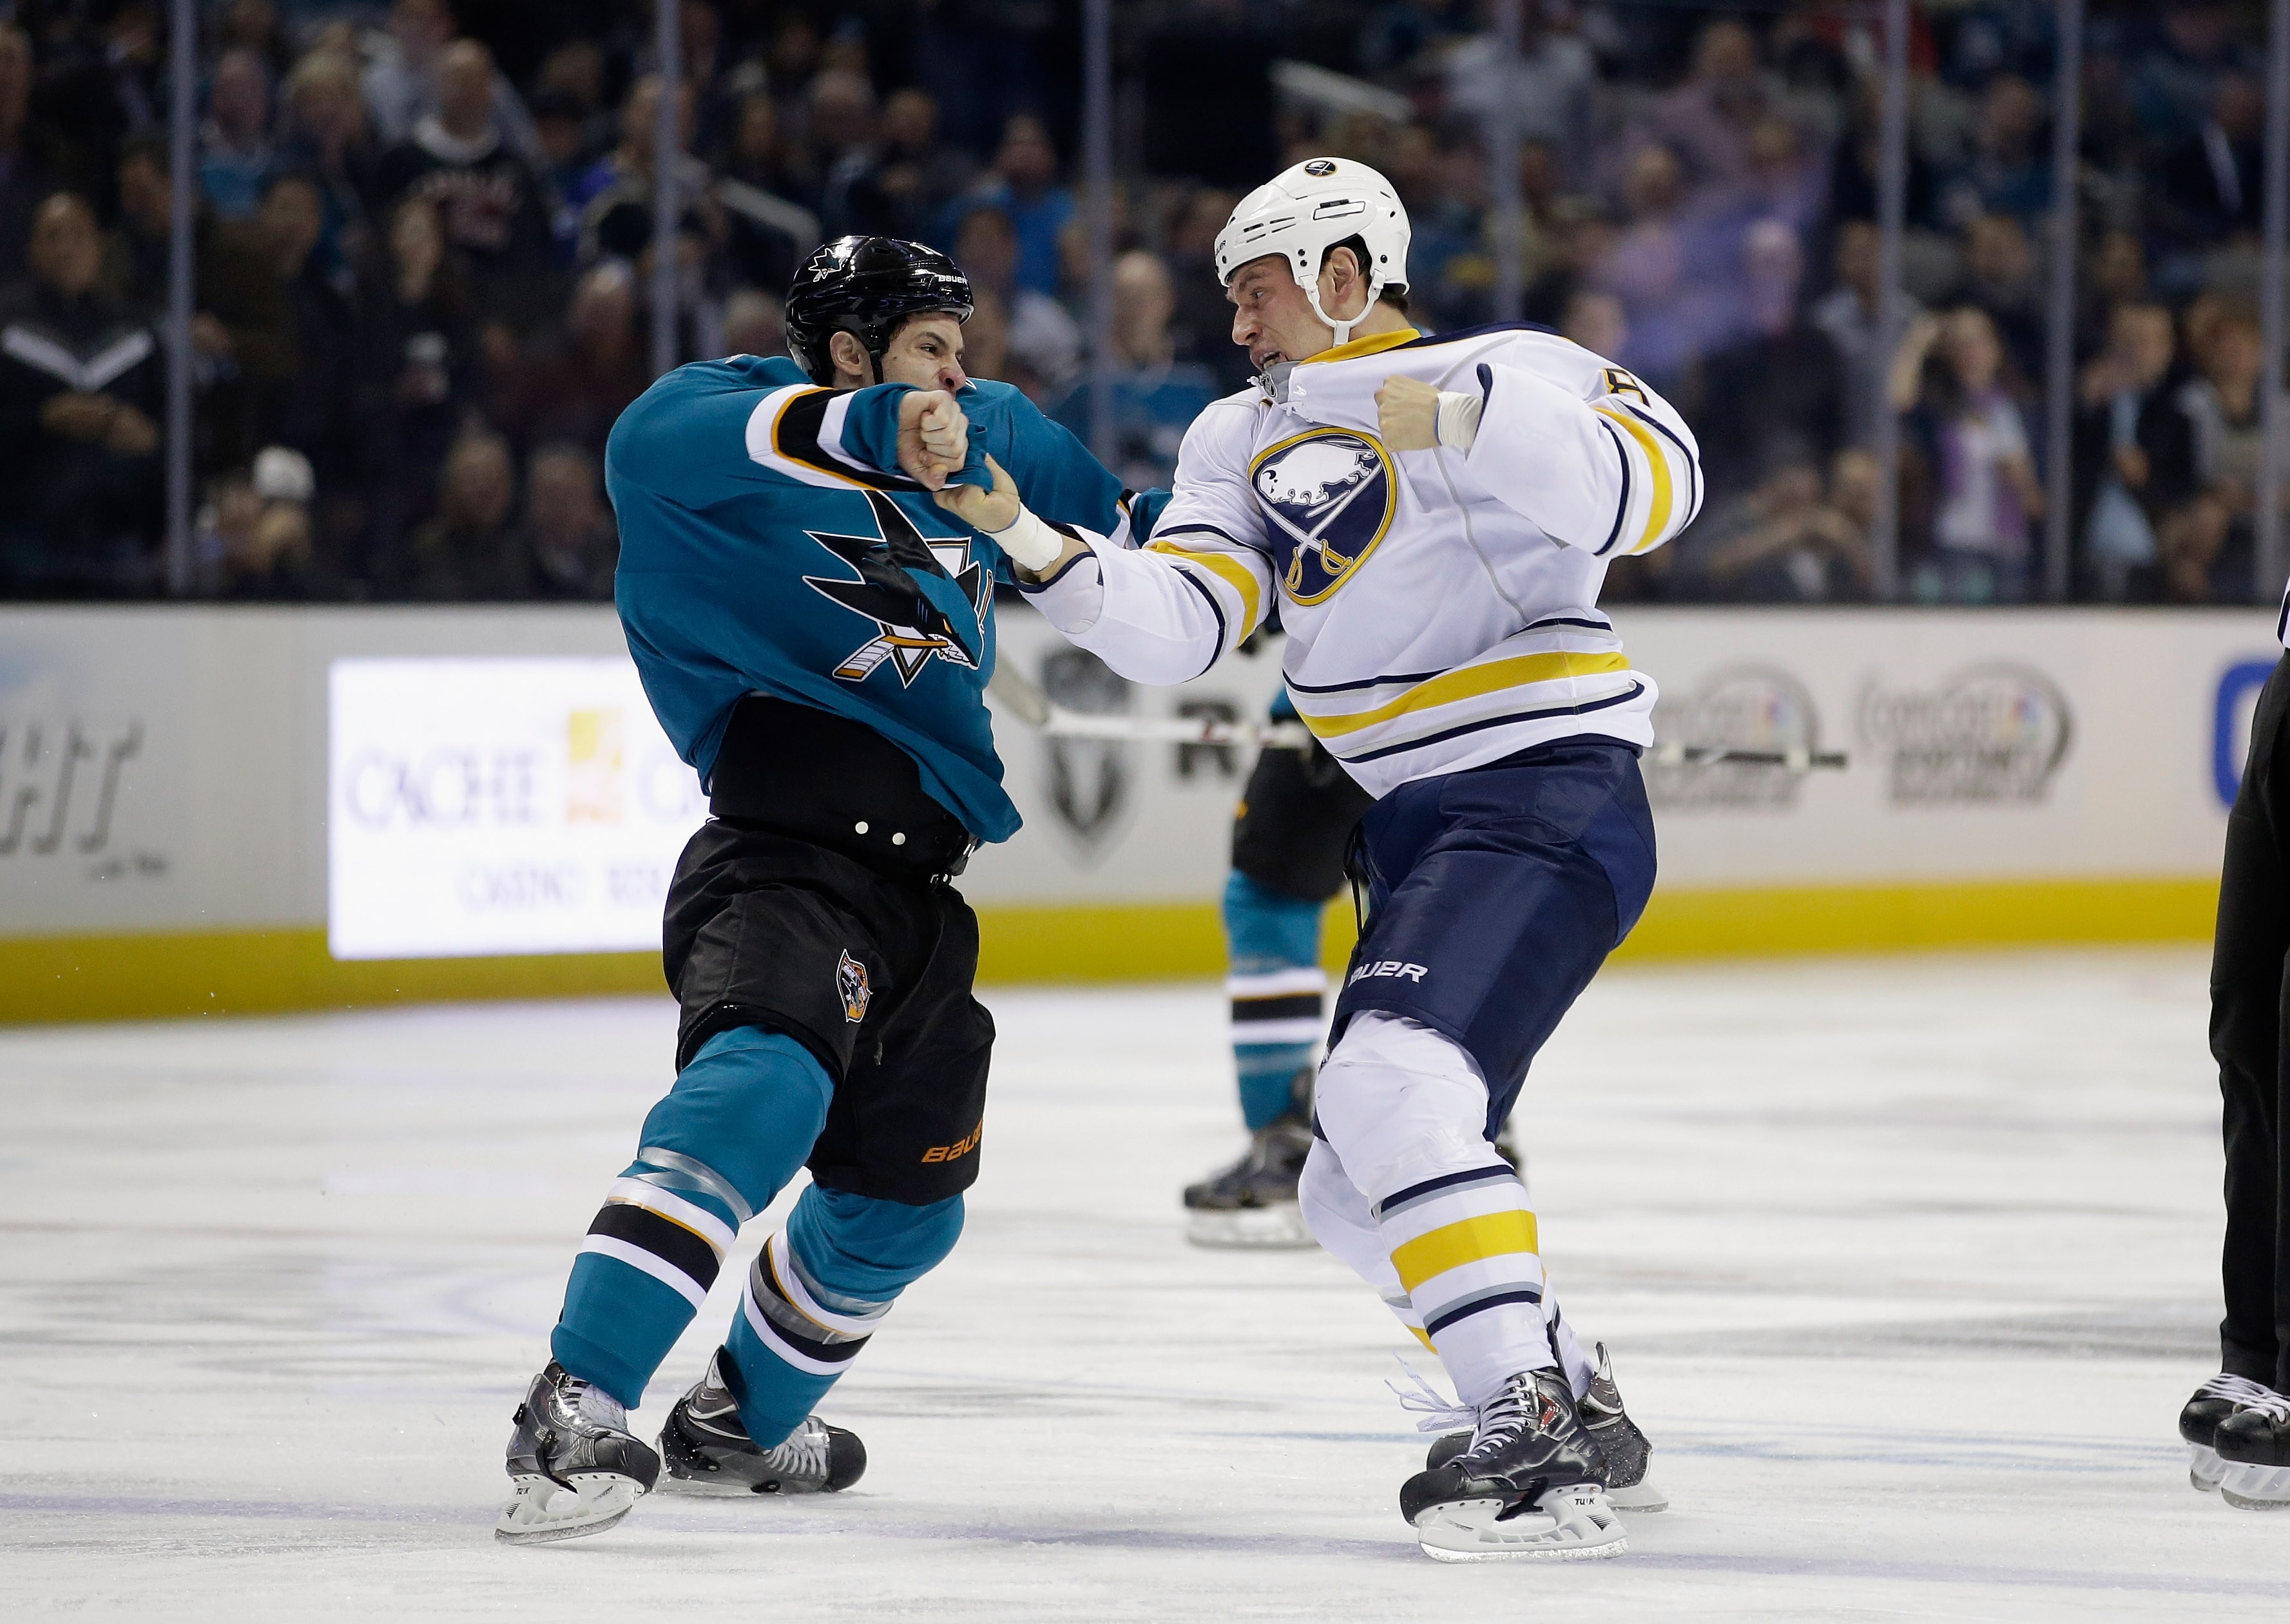 Cody McCormick, who scored one of the Sabres' goals, fights Mike Brown of the San Jose Sharks during Tuesday night's game.